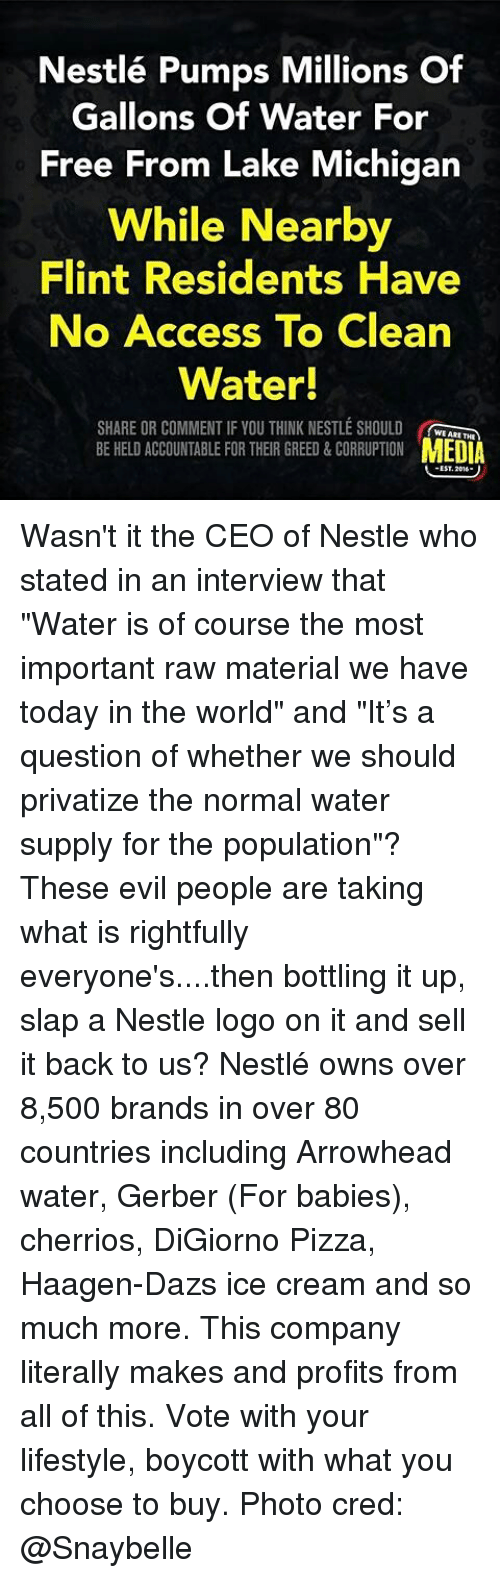 Nestlé Pumps Millions of Gallons of Water for Free From Lake